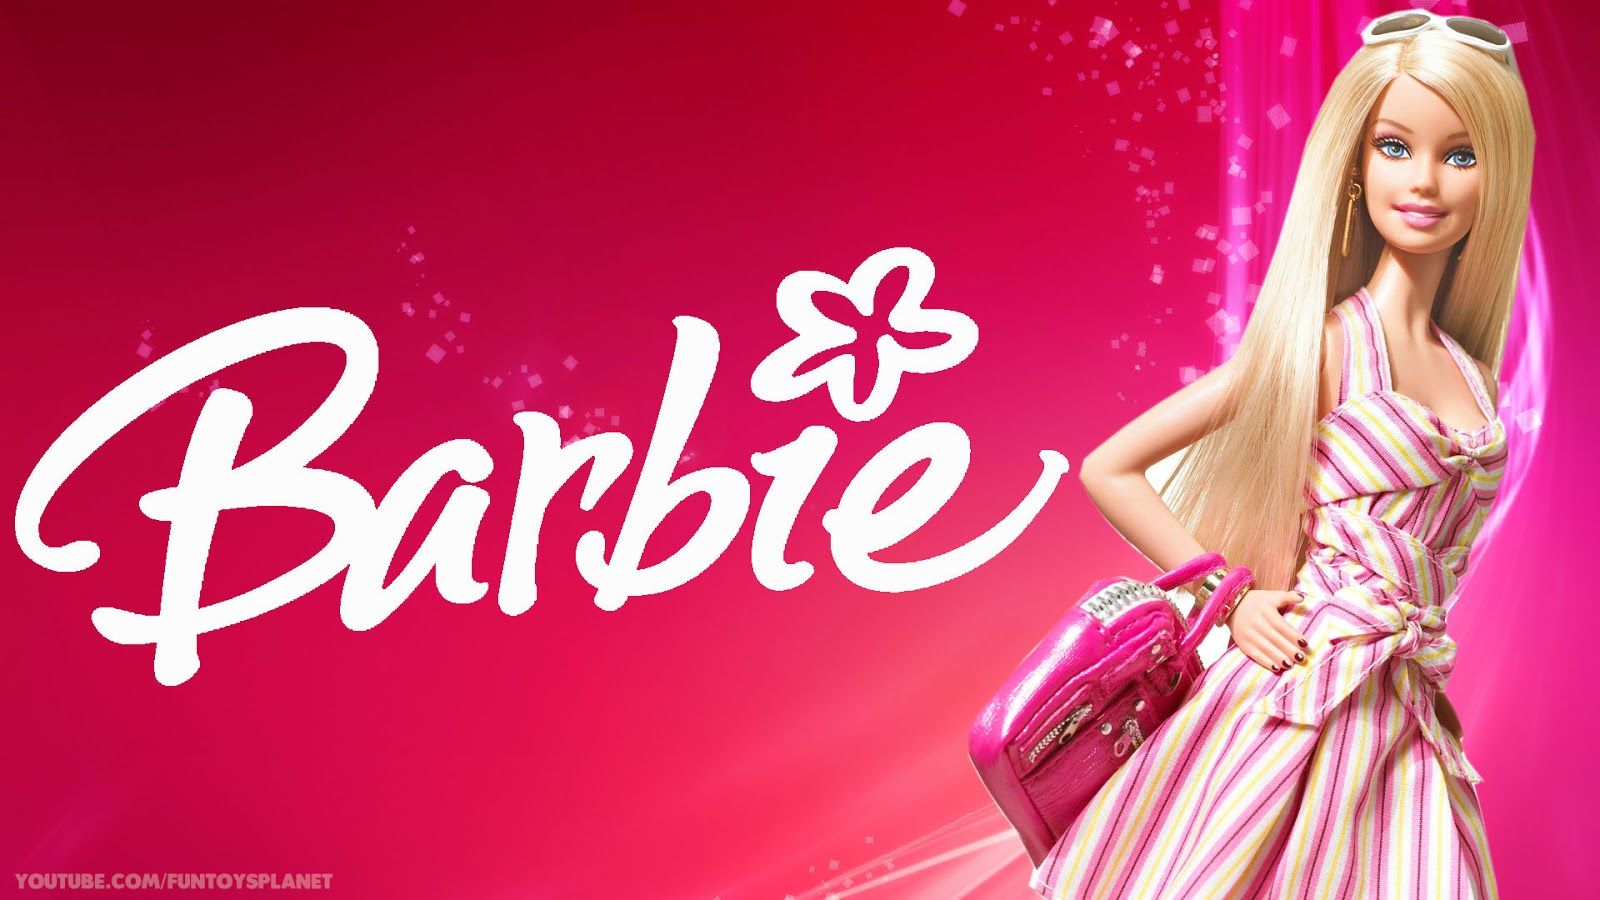 Barbie wallpapers free download wallpapers pinterest wallpaper barbie wallpapers free download voltagebd Images